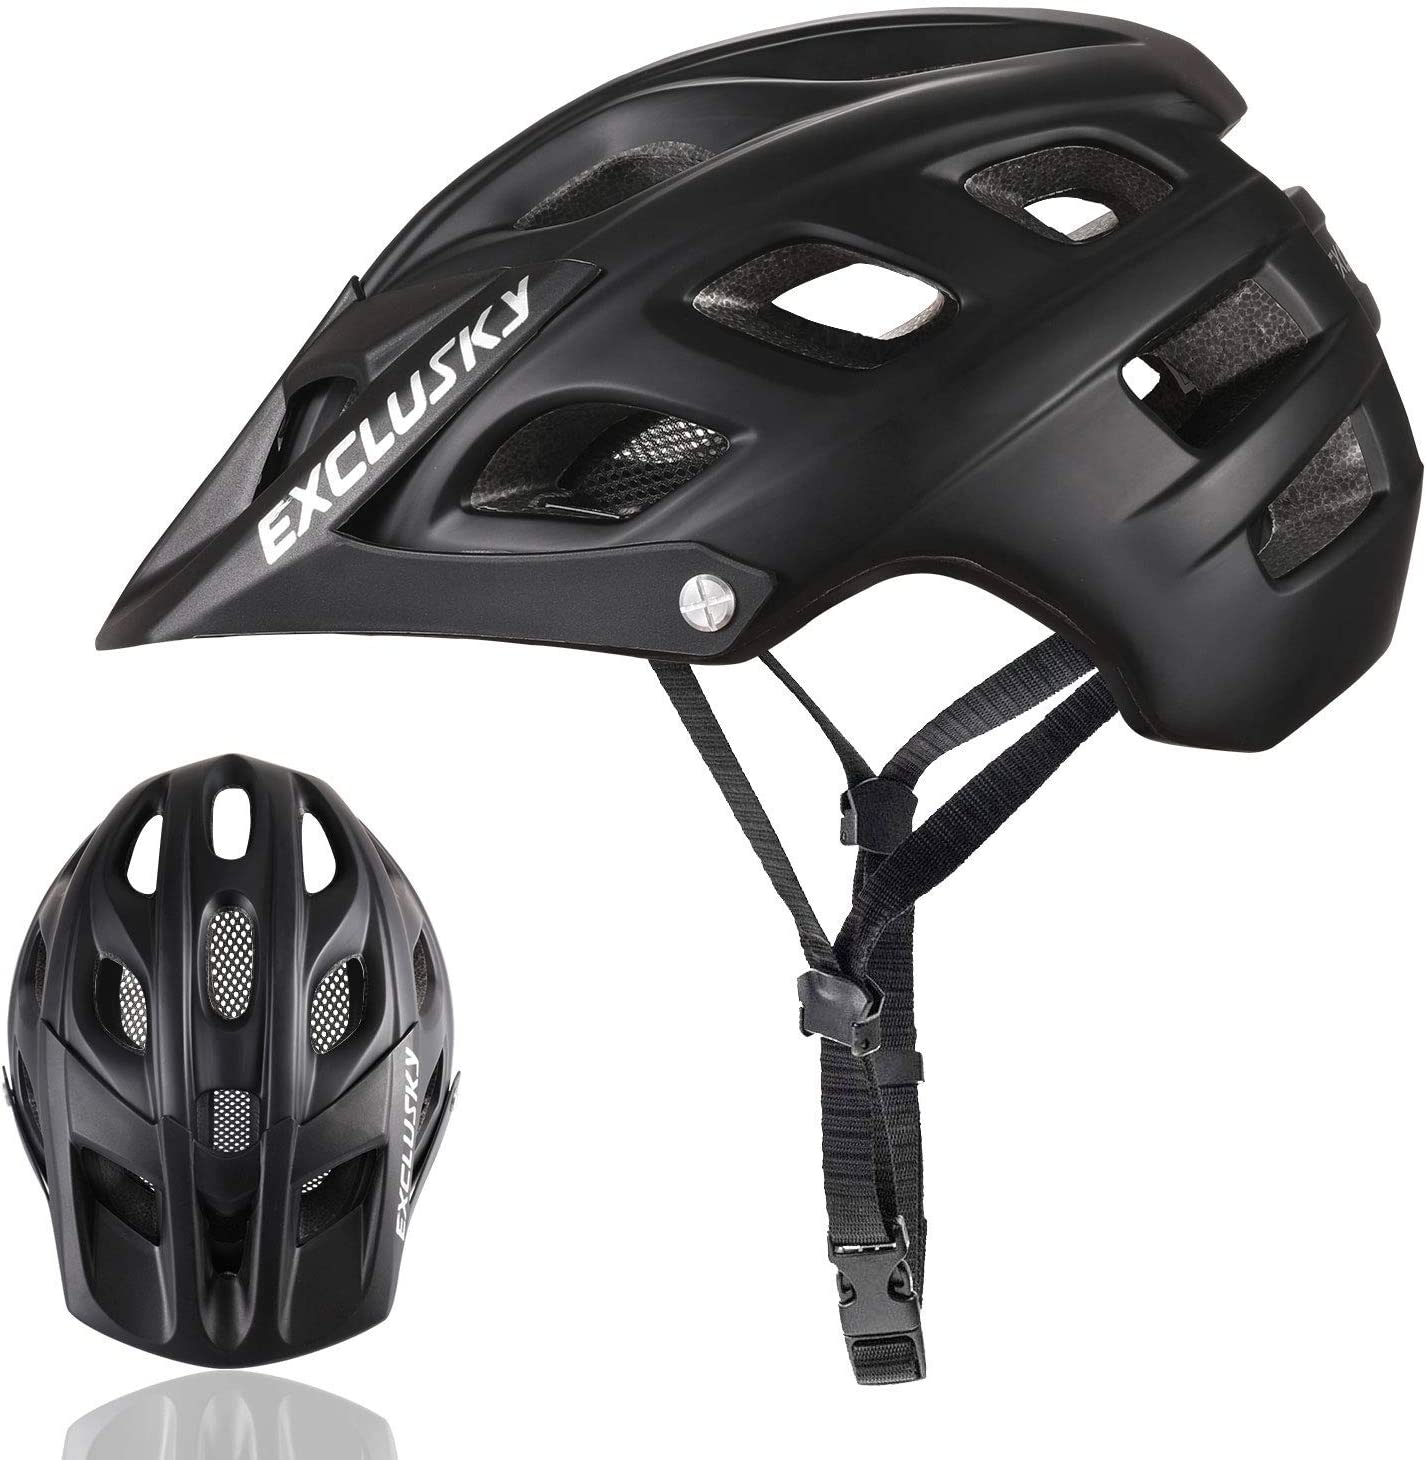 Exclusky Mountain Bike Helmet with Detachable Visor for Adult Women and Men – Adjustable M L Size 22.05-24.01 Inches